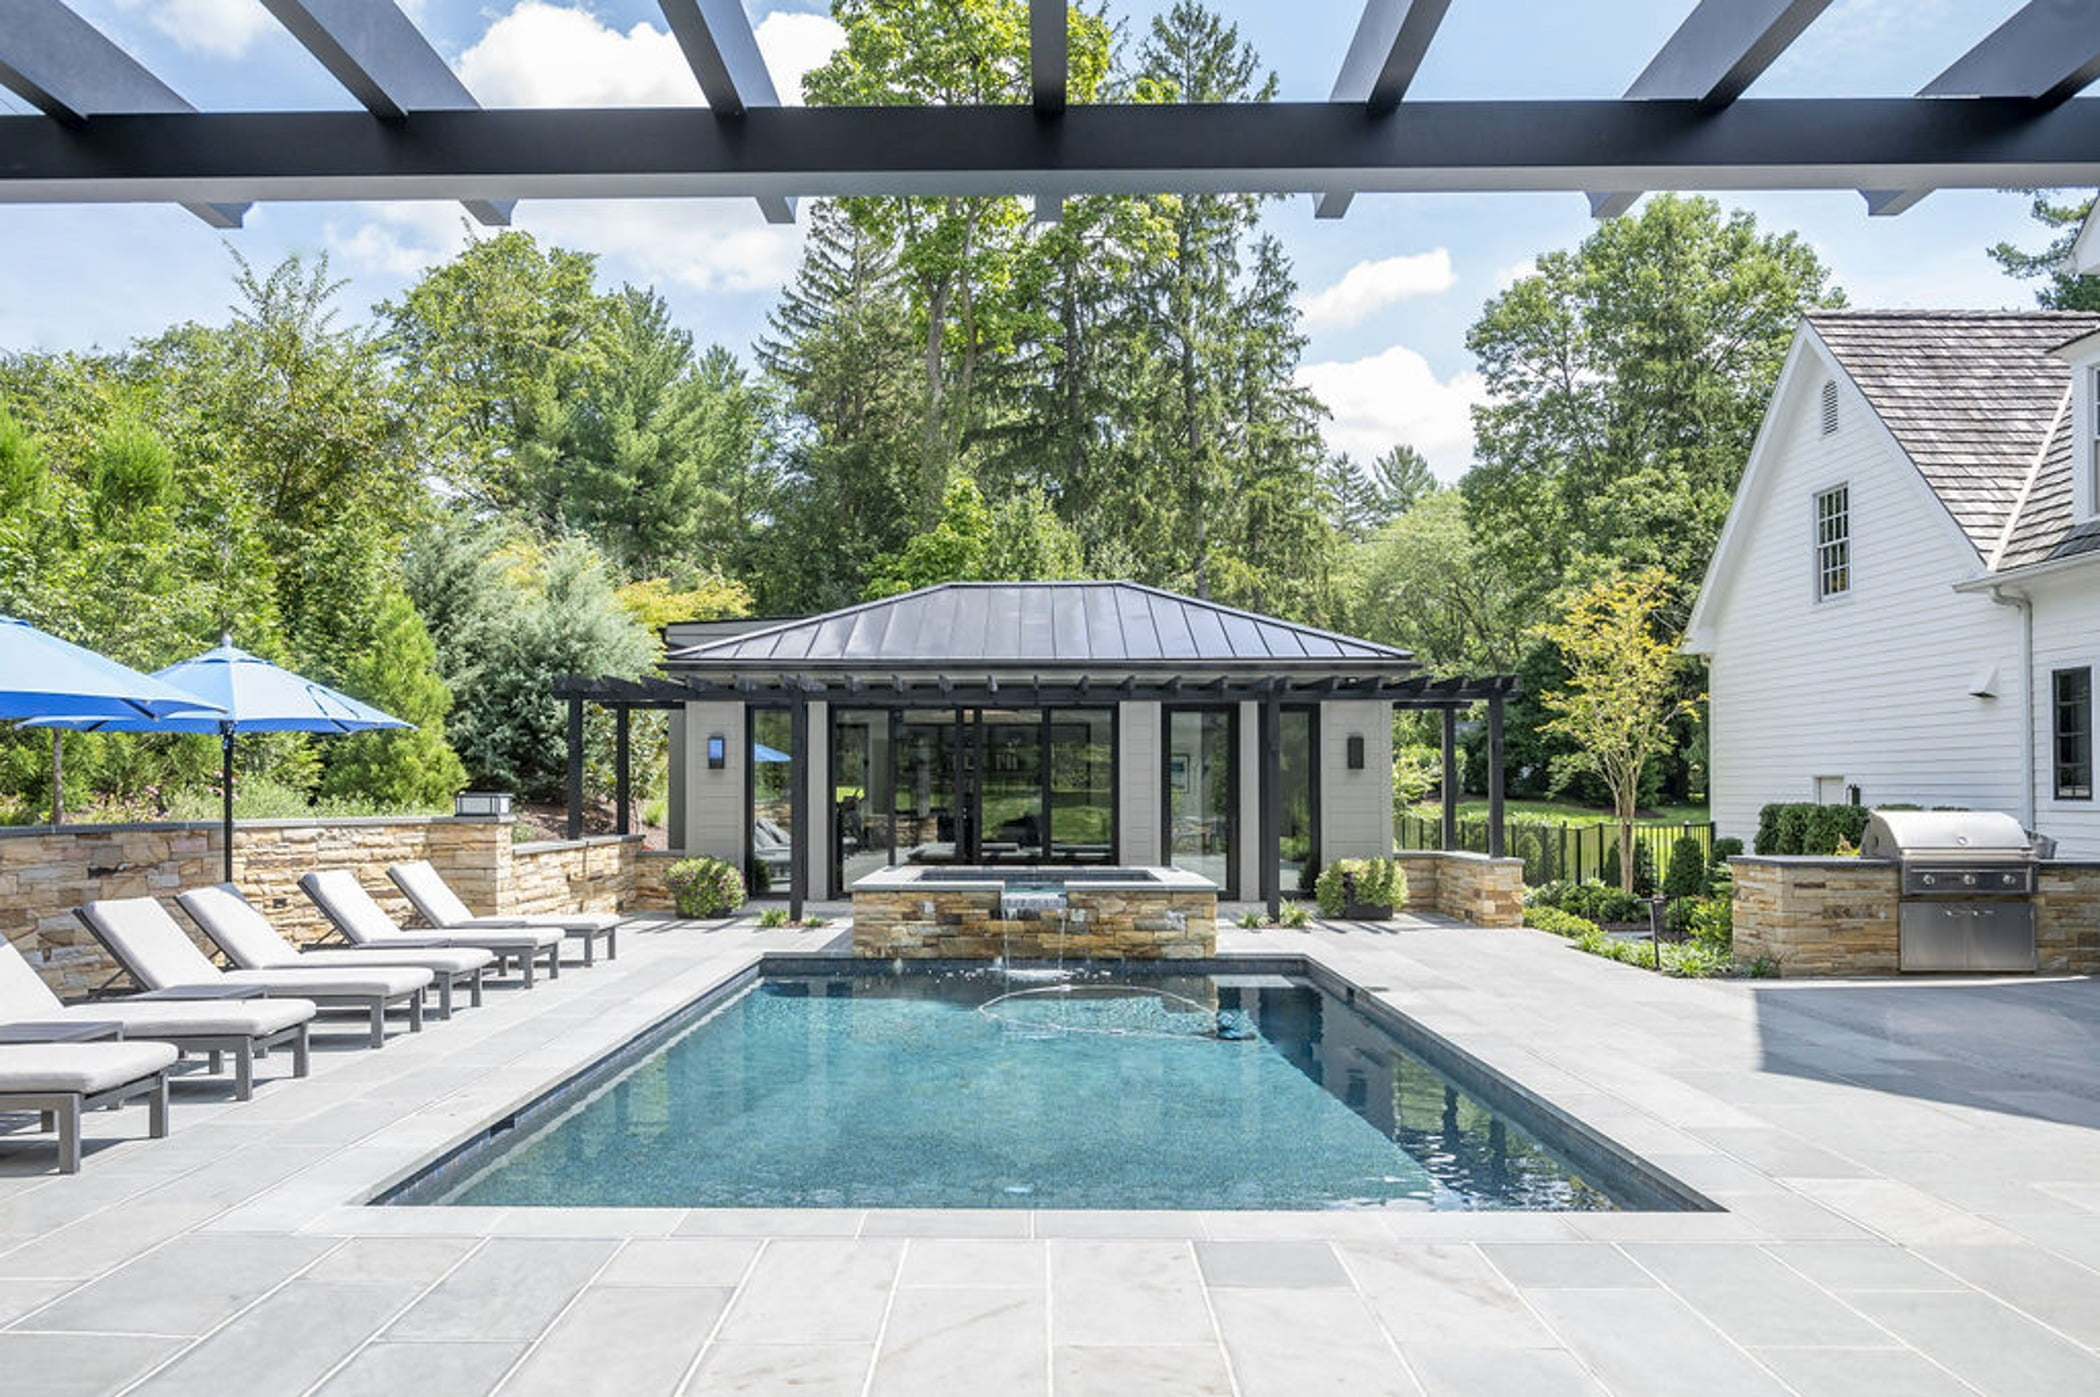 Transitional backyard patio and poolhouse with concrete pavers and cobblestone accented retaining walls and hot tub